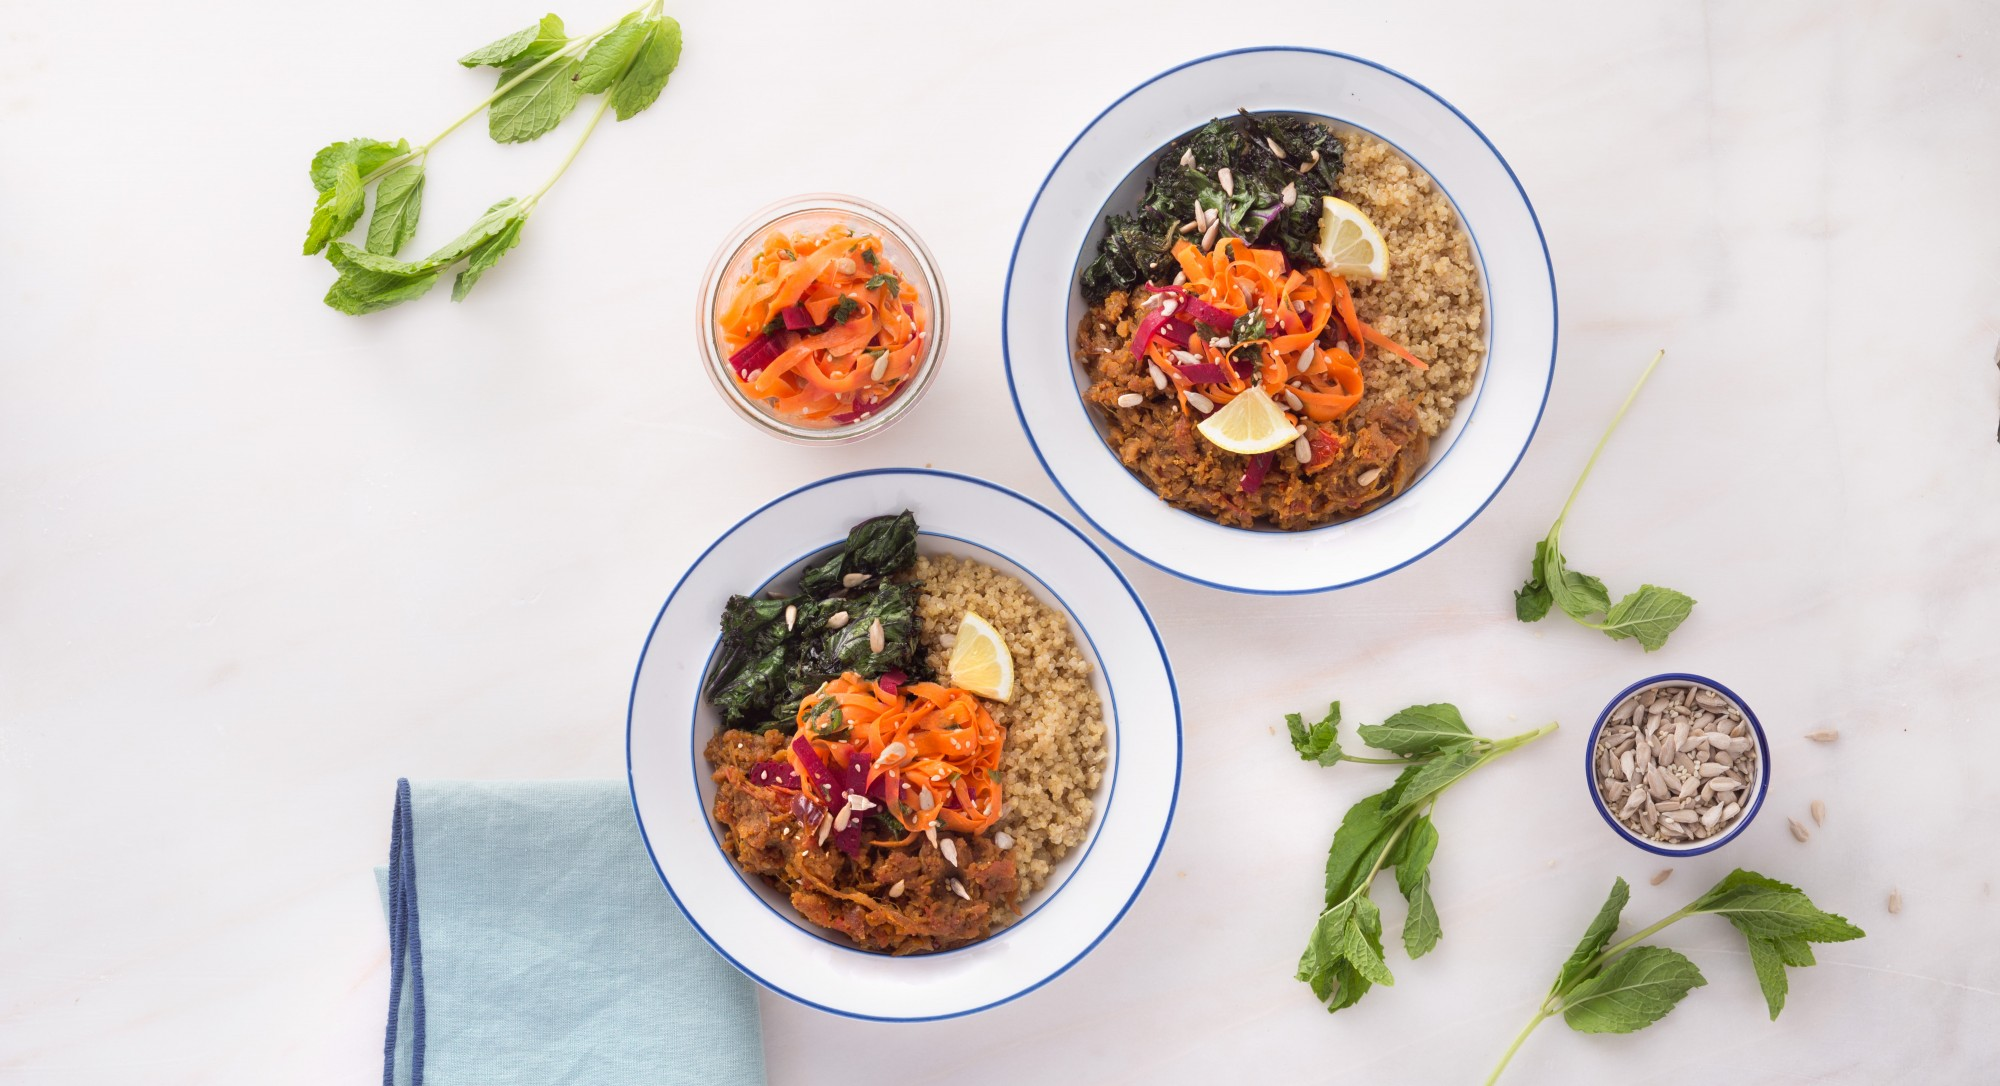 Refuel and Re-energize With This Yogi Lentil Bowl